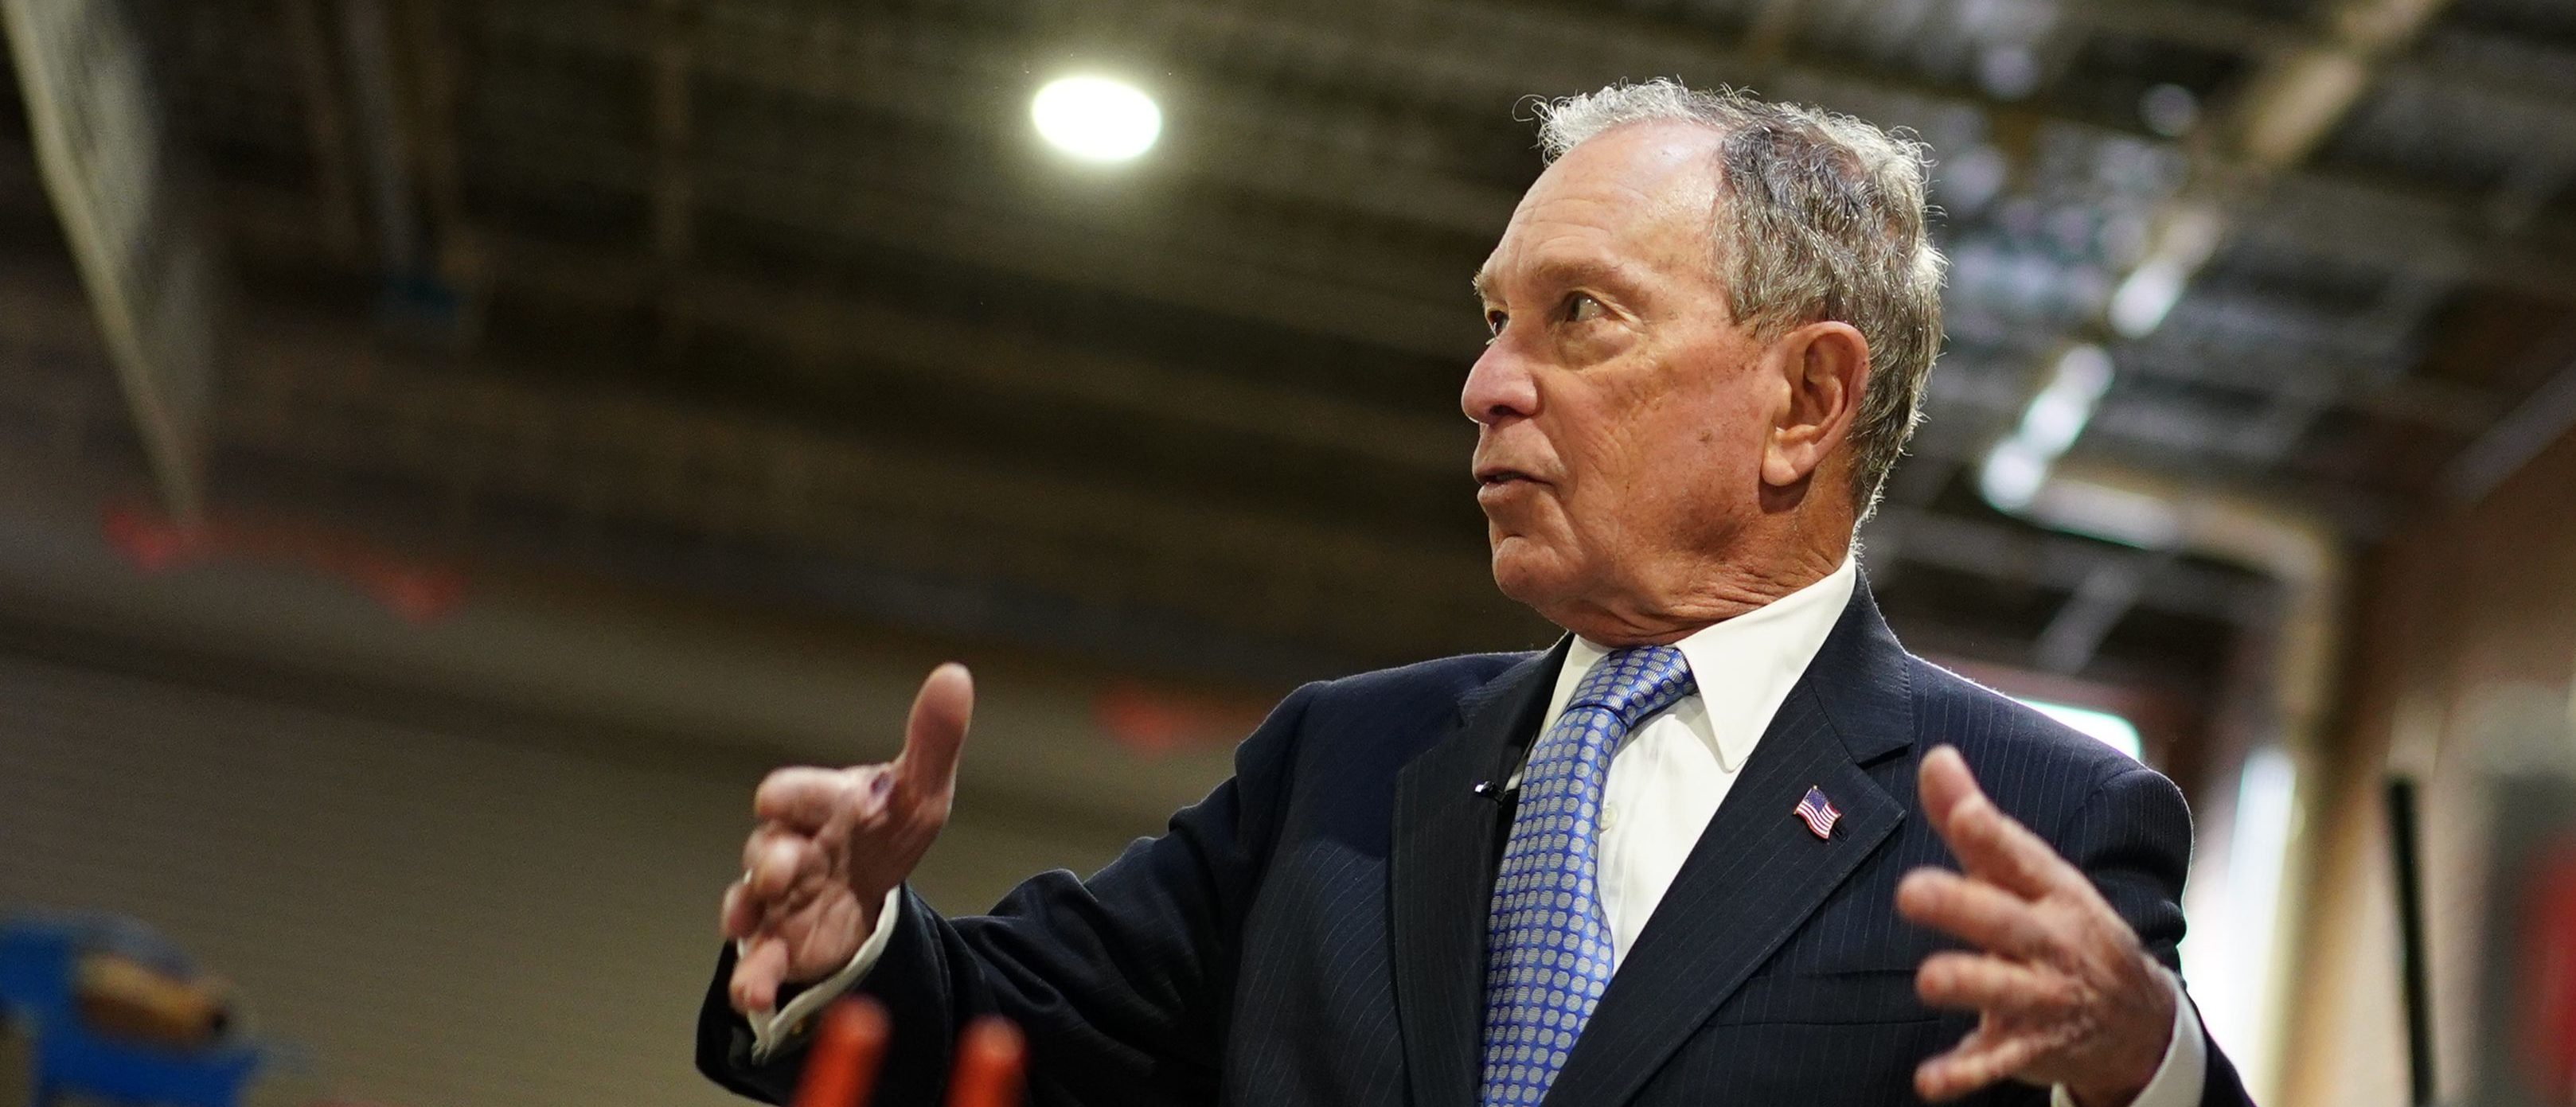 """U.S. Democratic presidential candidate Mike Bloomberg speaks while visiting """"Building Momentum,"""" a veteran owned business in Alexandria, Virginia on Feb. 7, 2020. (Photo by Mandel Ngan / AFP) (Photo by MANDEL NGAN/AFP via Getty Images)"""